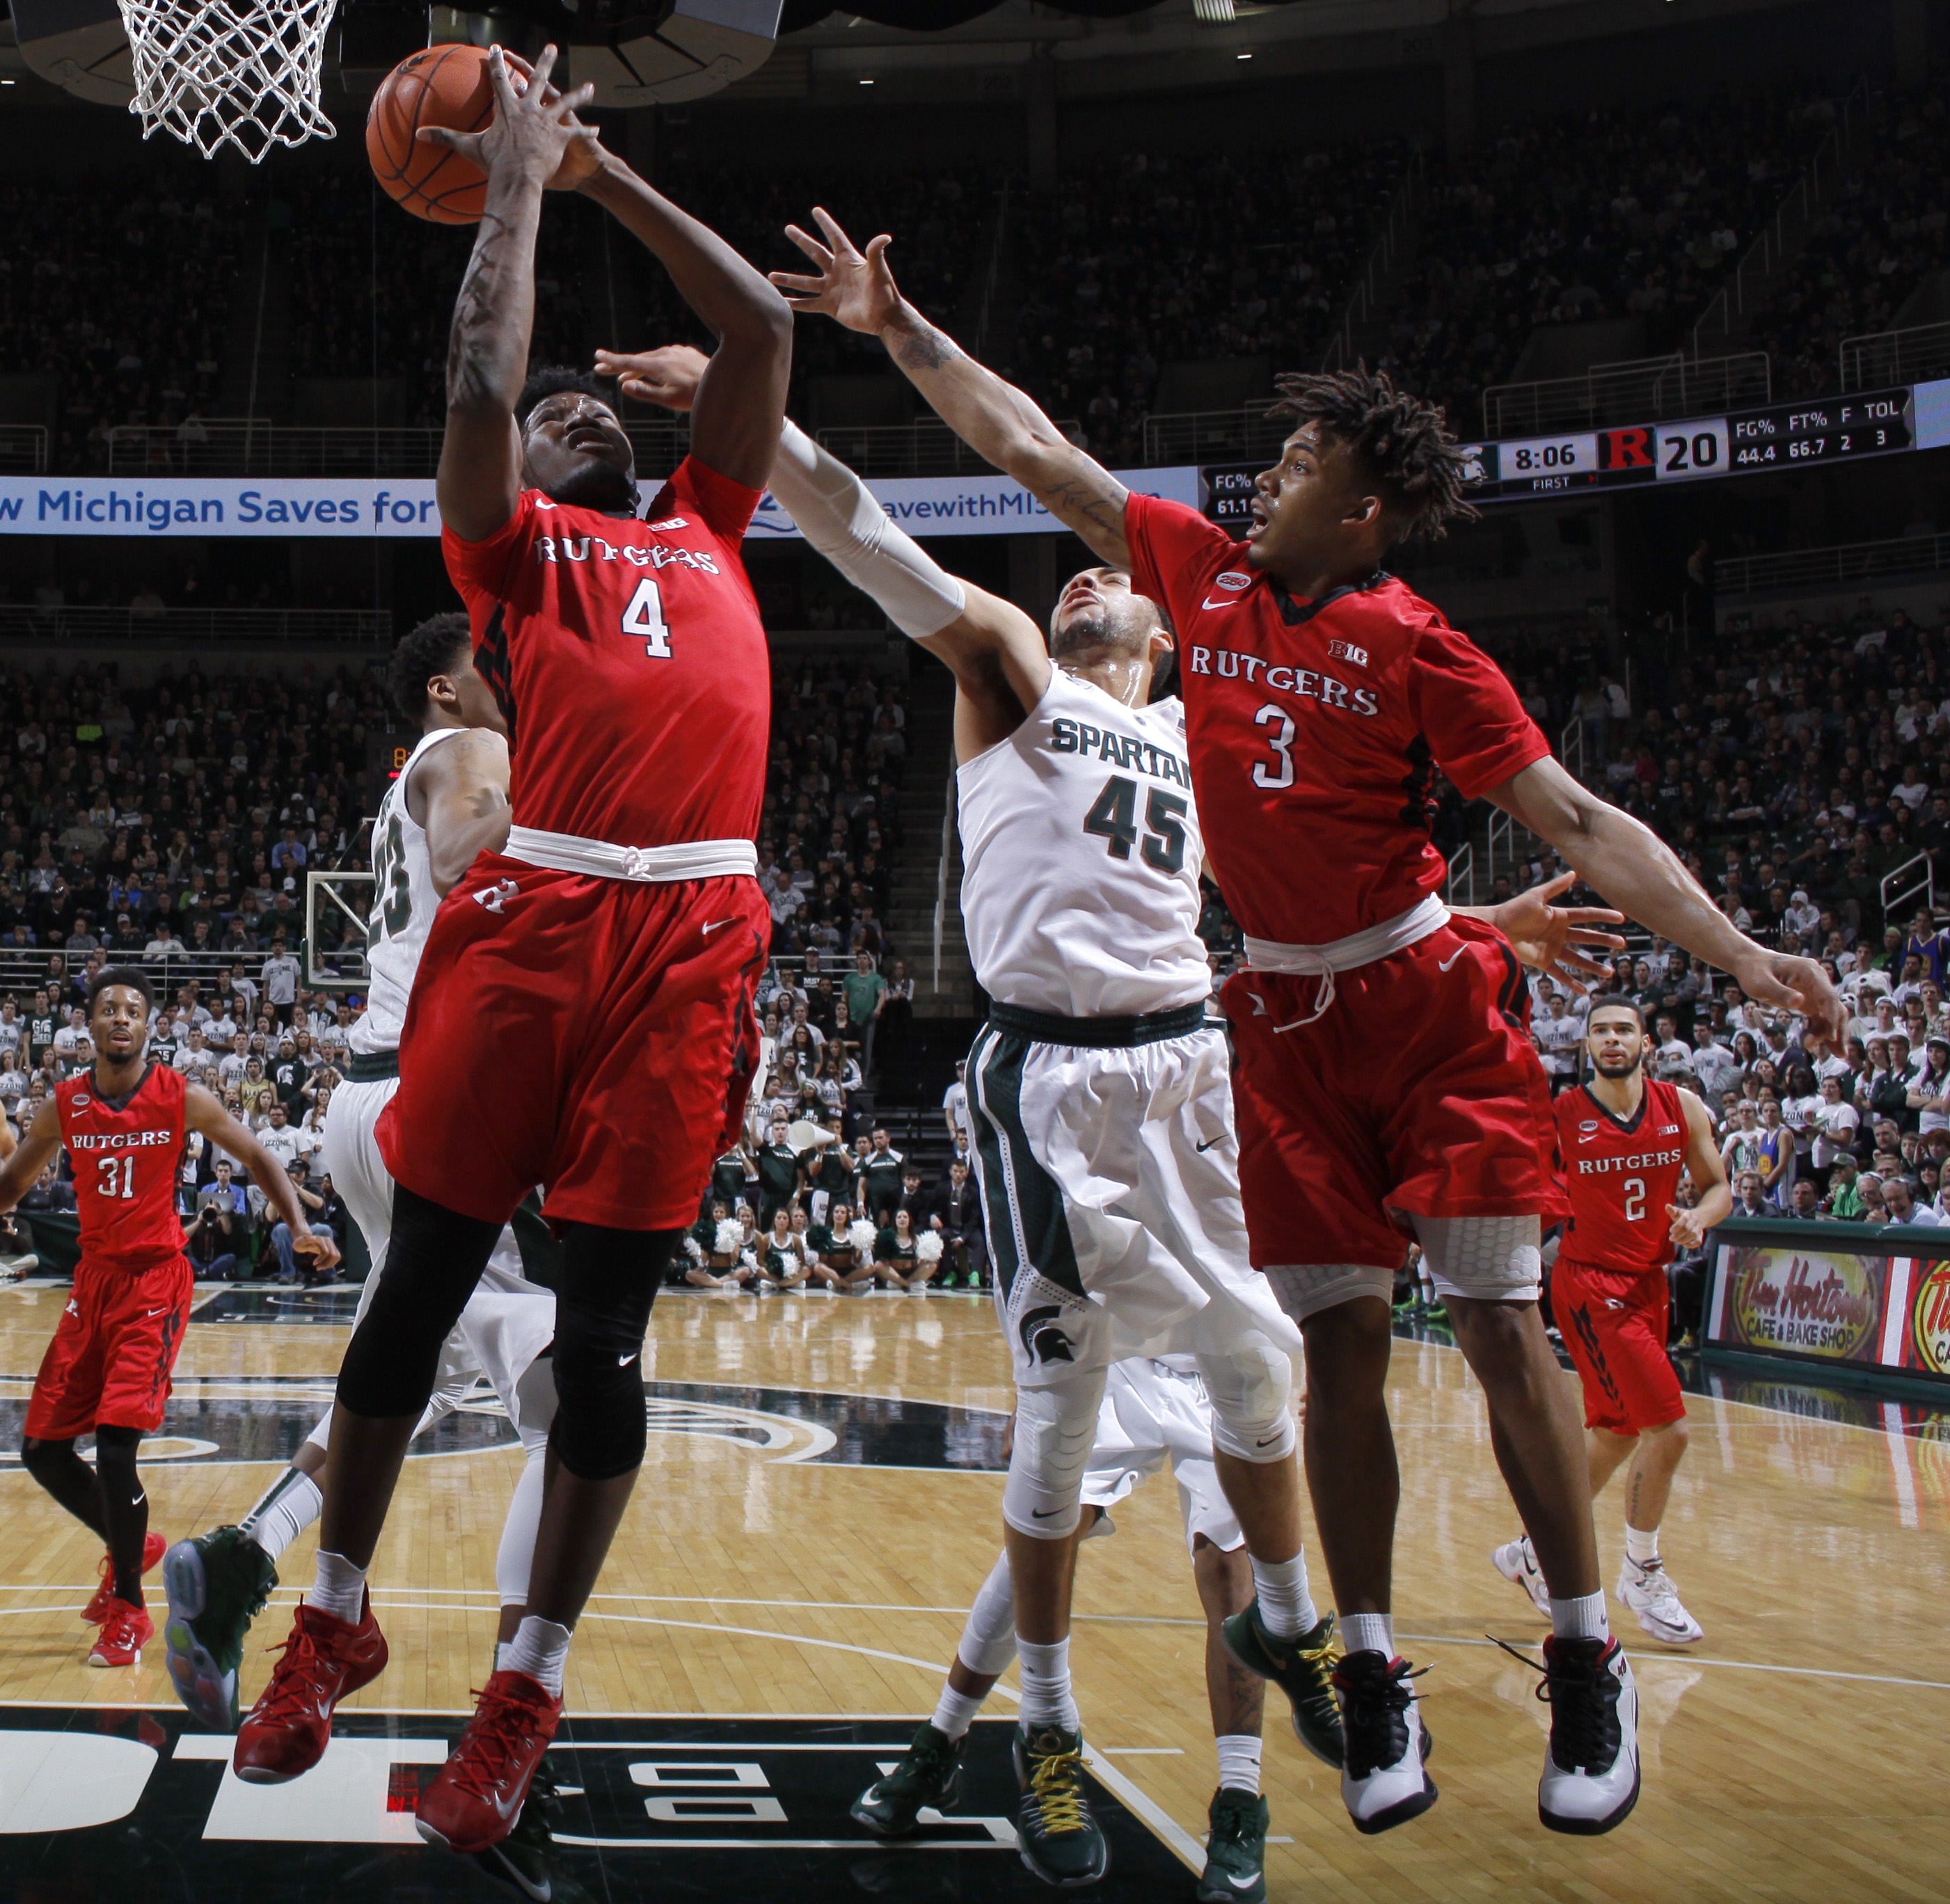 Rutgers' Jonathan Laurent (4) and Corey Sanders (3) and Michigan State's Denzel Valentine (45) reach for a rebound during the first half of an NCAA college basketball game, Sunday, Jan. 31, 2016, in East Lansing, Mich. (AP Photo/Al Goldis)